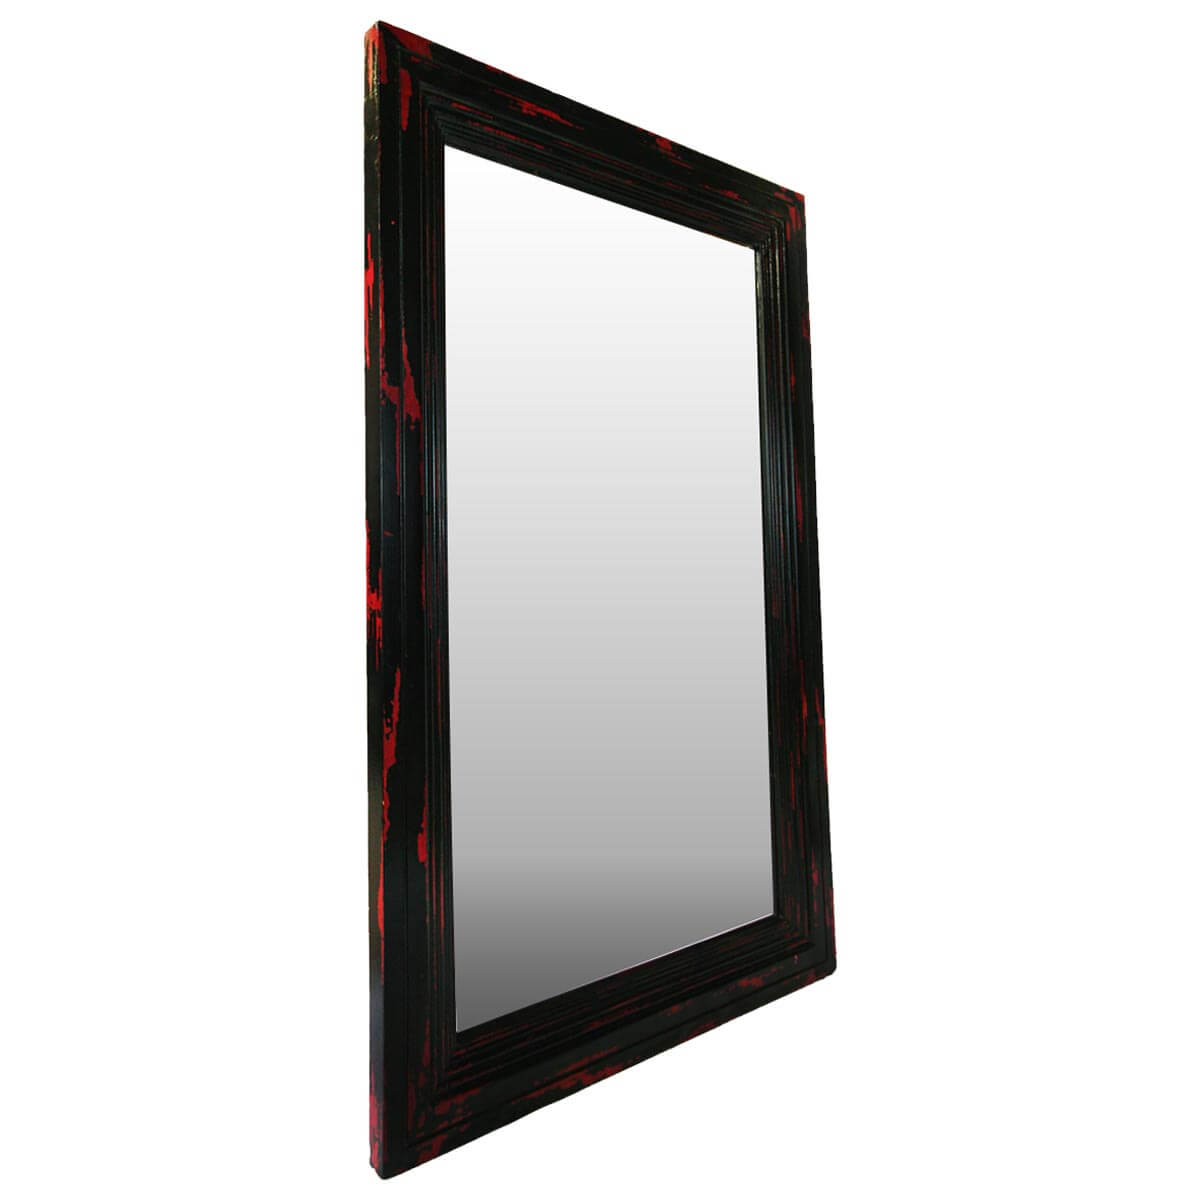 Frontier Rustic Acacia Wood Red & Black Distressed Wall Mirror Frame